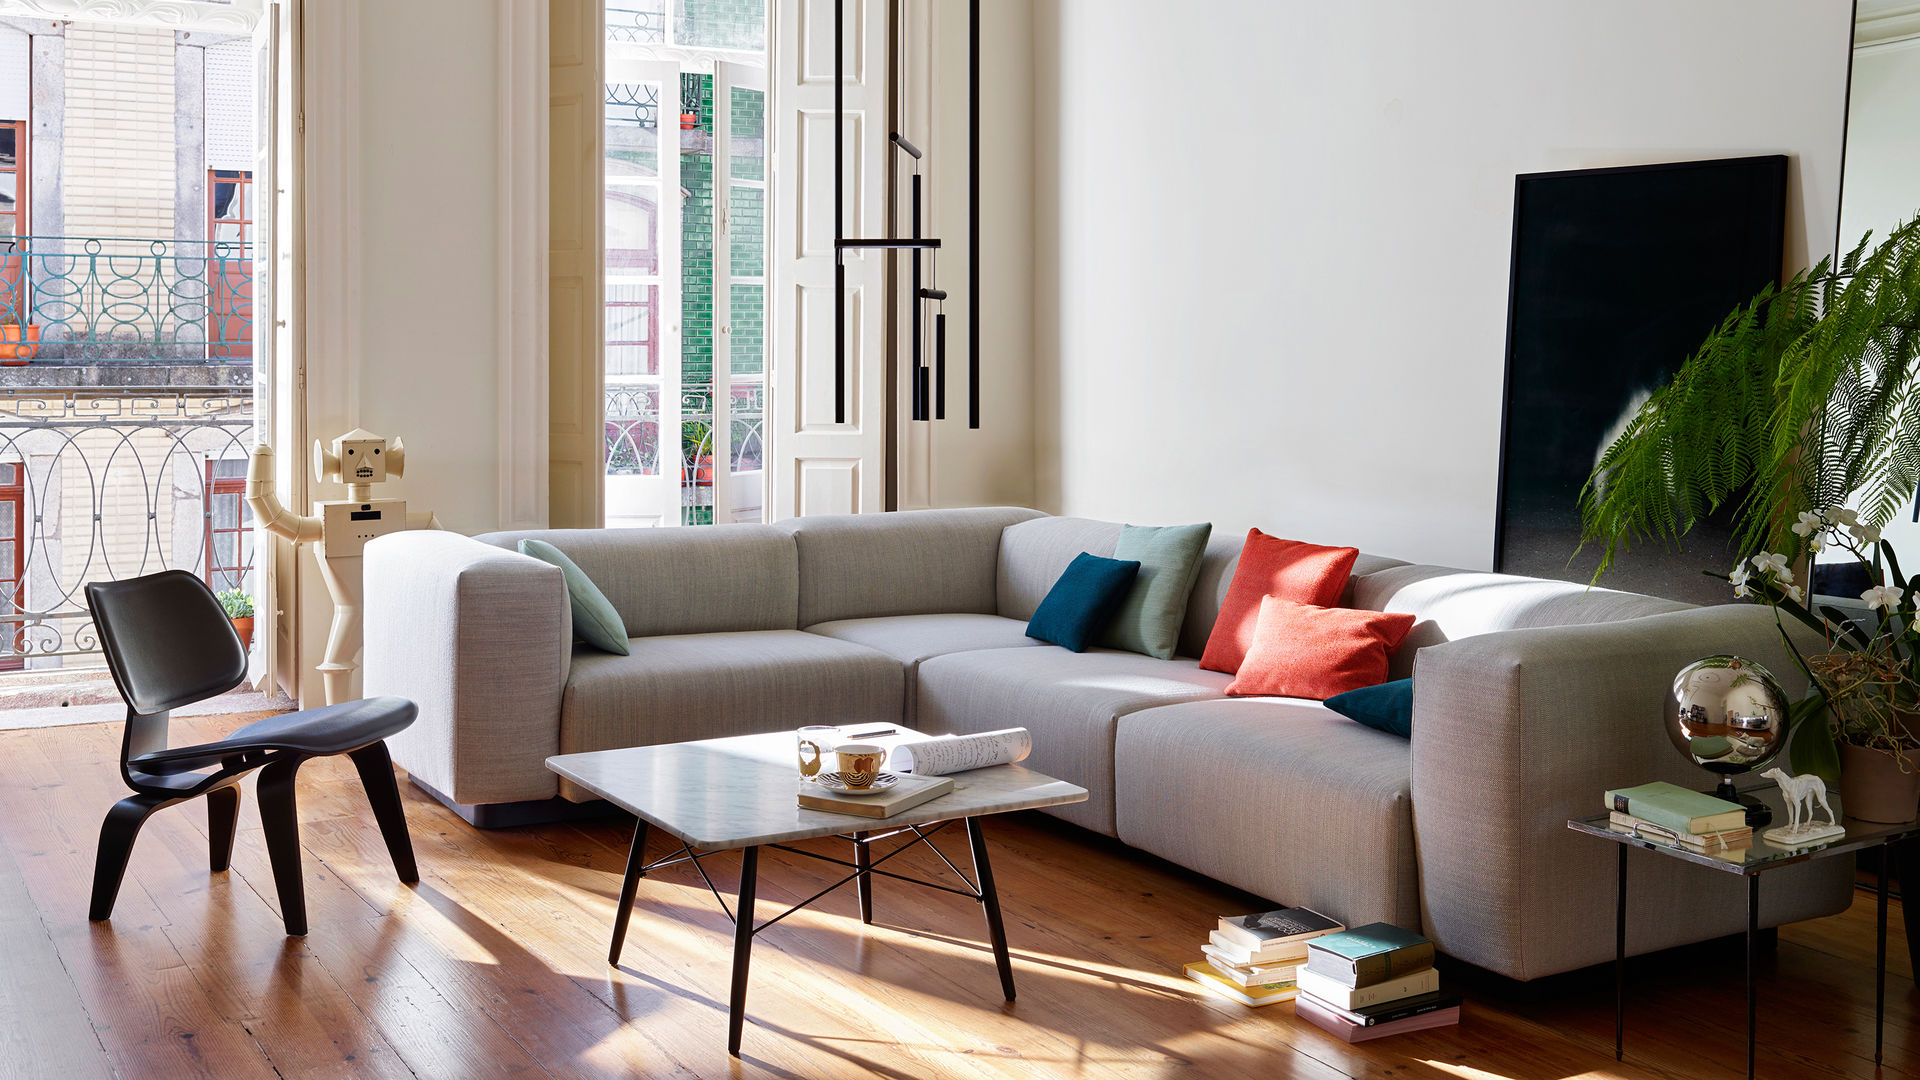 Soft Modular Sofa LCW Eames Coffee Table_web_parallax